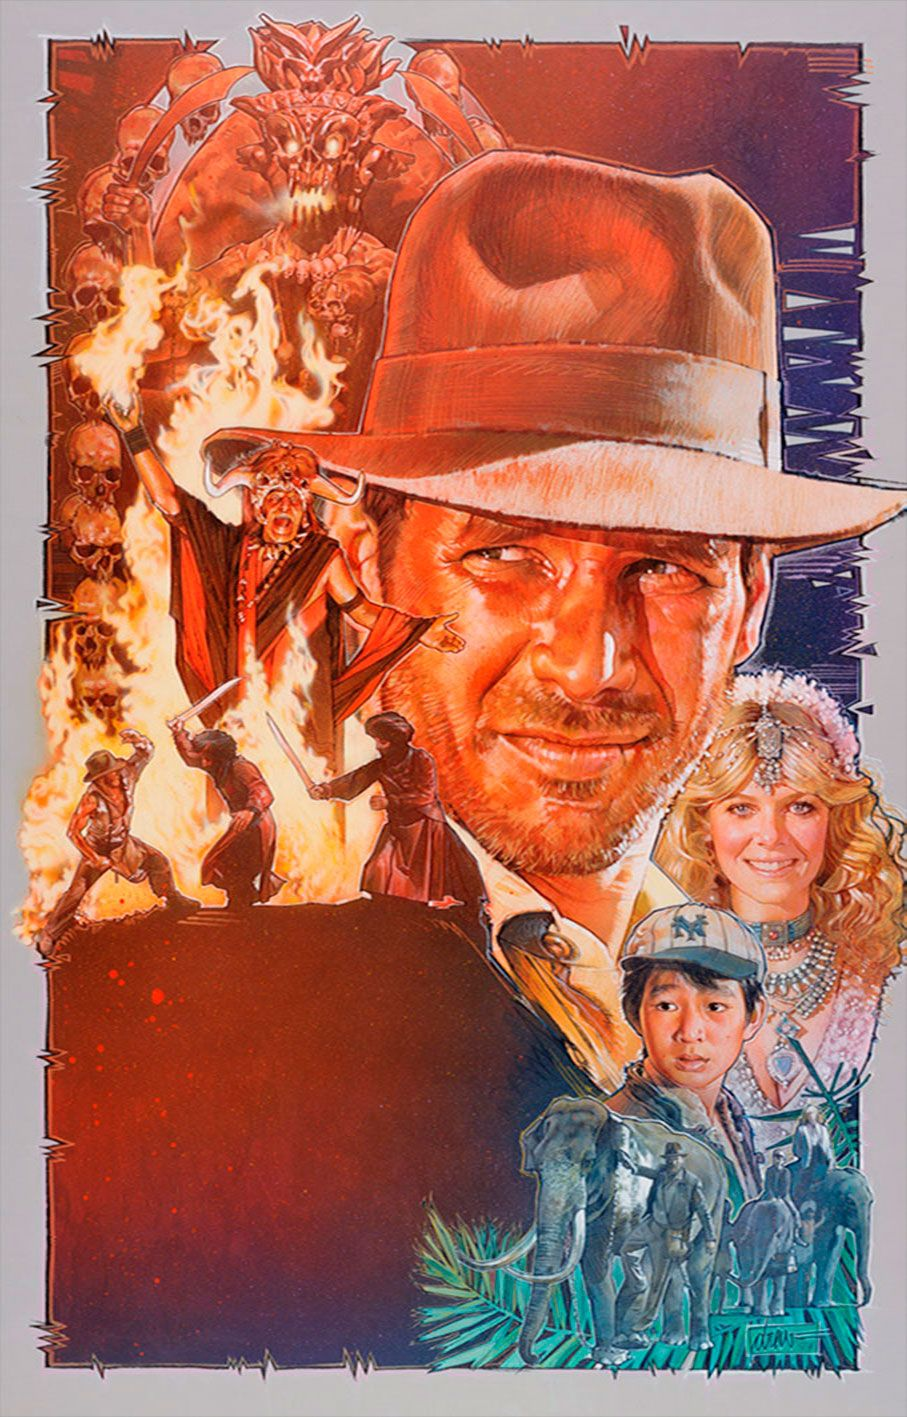 """Indiana Jones and the Temple of Doom Medium: Acrylic paints & colored pencils on gessoed board Size: 30x40 inches Year 1984 If adventure has a name... it must be Indiana Jones. Signed and dated bottom right corner """"drew '84"""" © Copyright Lucasfilm Ltd. 1984"""